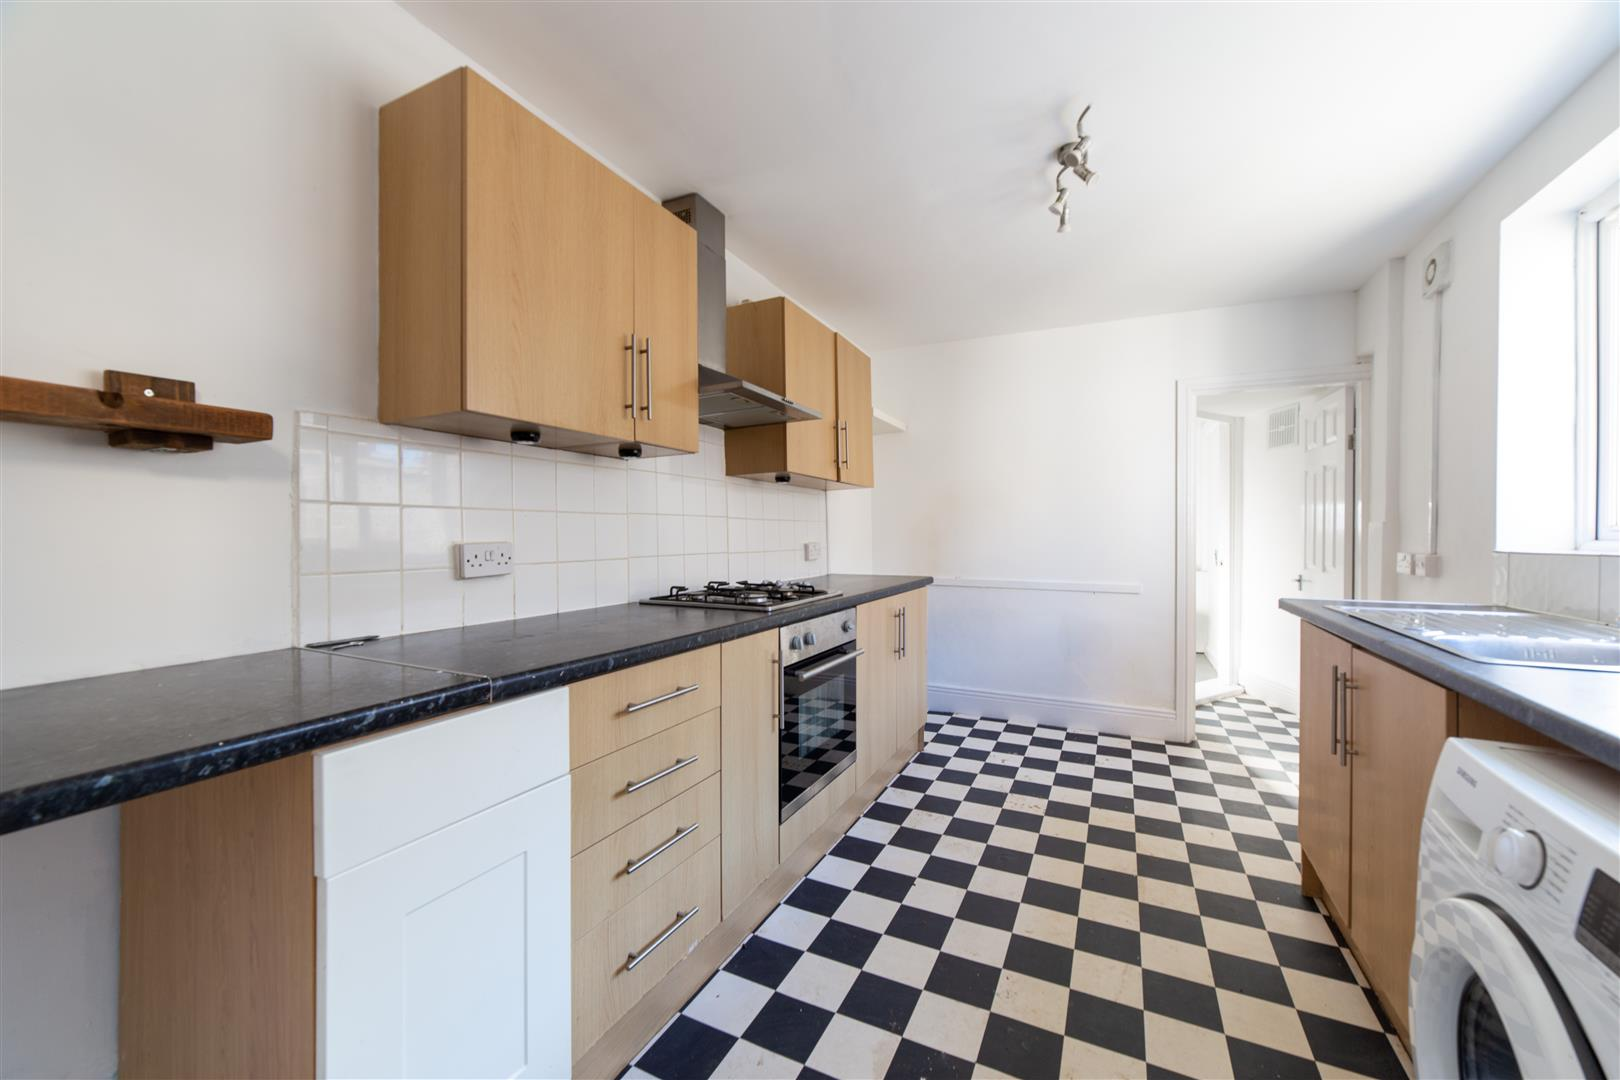 3 bed end of terrace house to rent in Whitby Street, North Shields, NE30